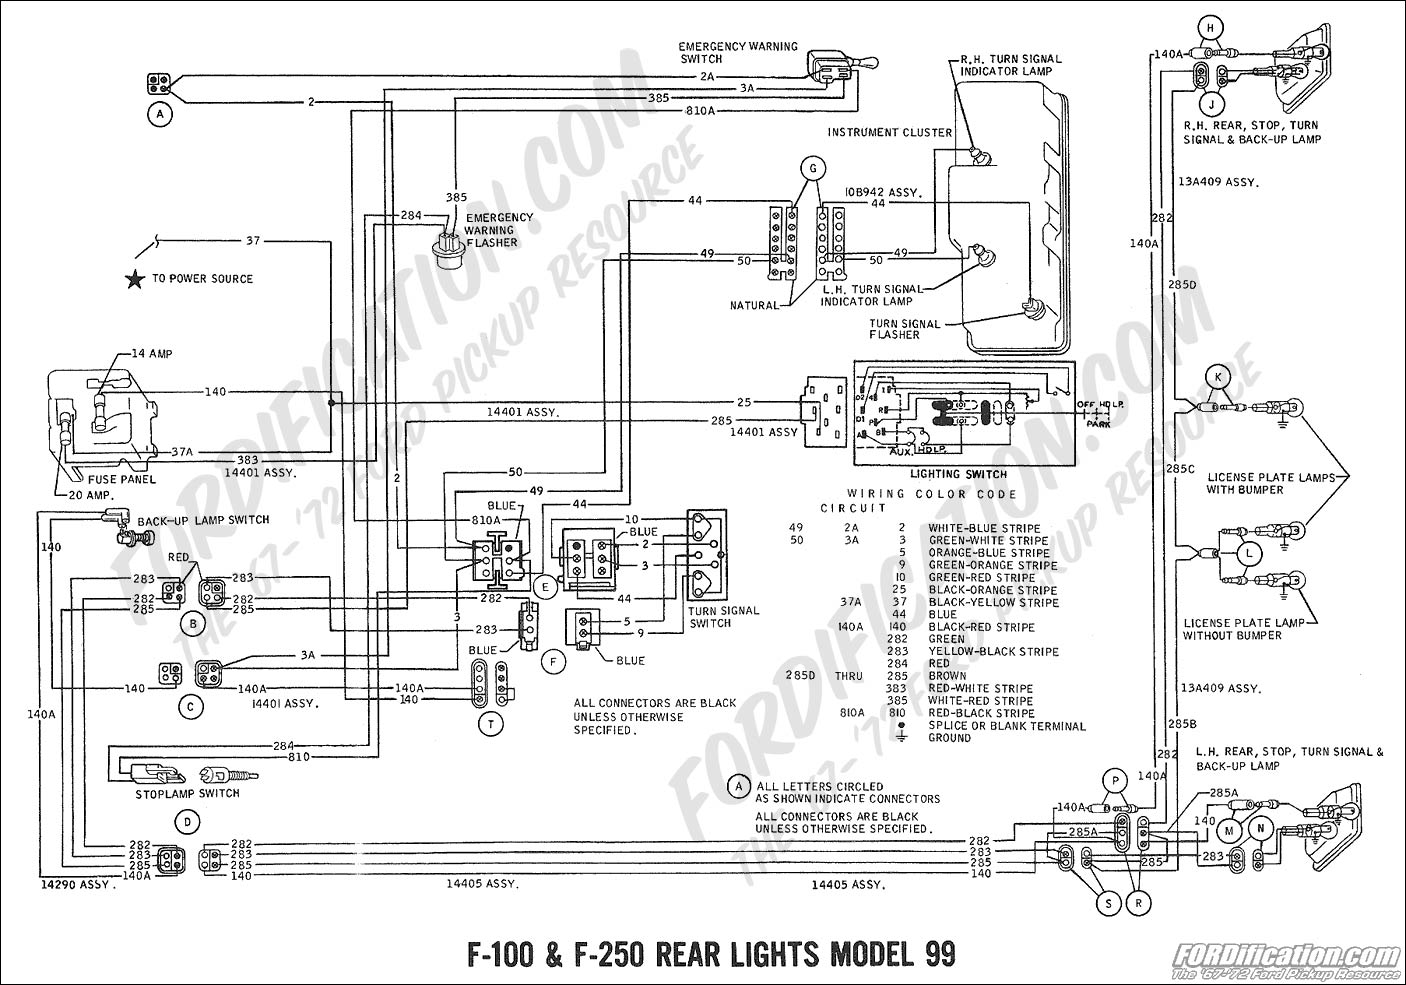 4 Pin Trailer Wiring Diagram 2012 Frontier Gt Circuits Gt 99 Civic Wiring Diagram Courtesy Lights